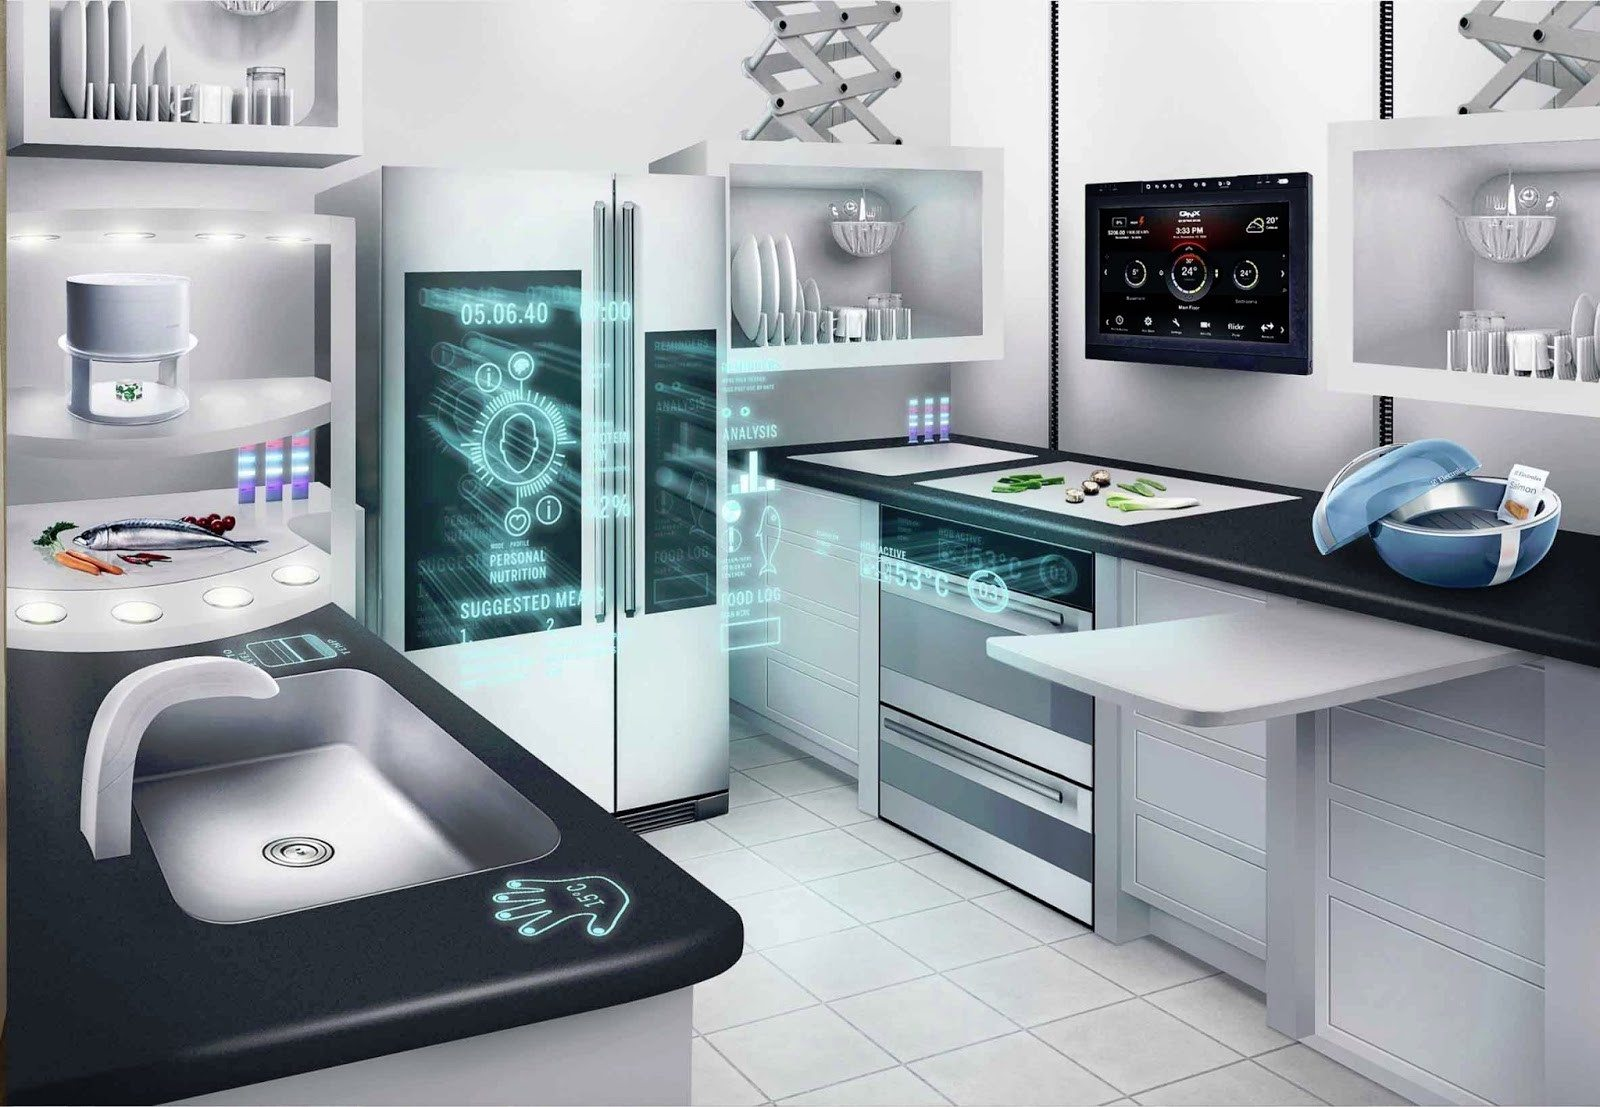 Countertop Cooking Appliances Kitchen Appliances Of The Future What Can We Expect